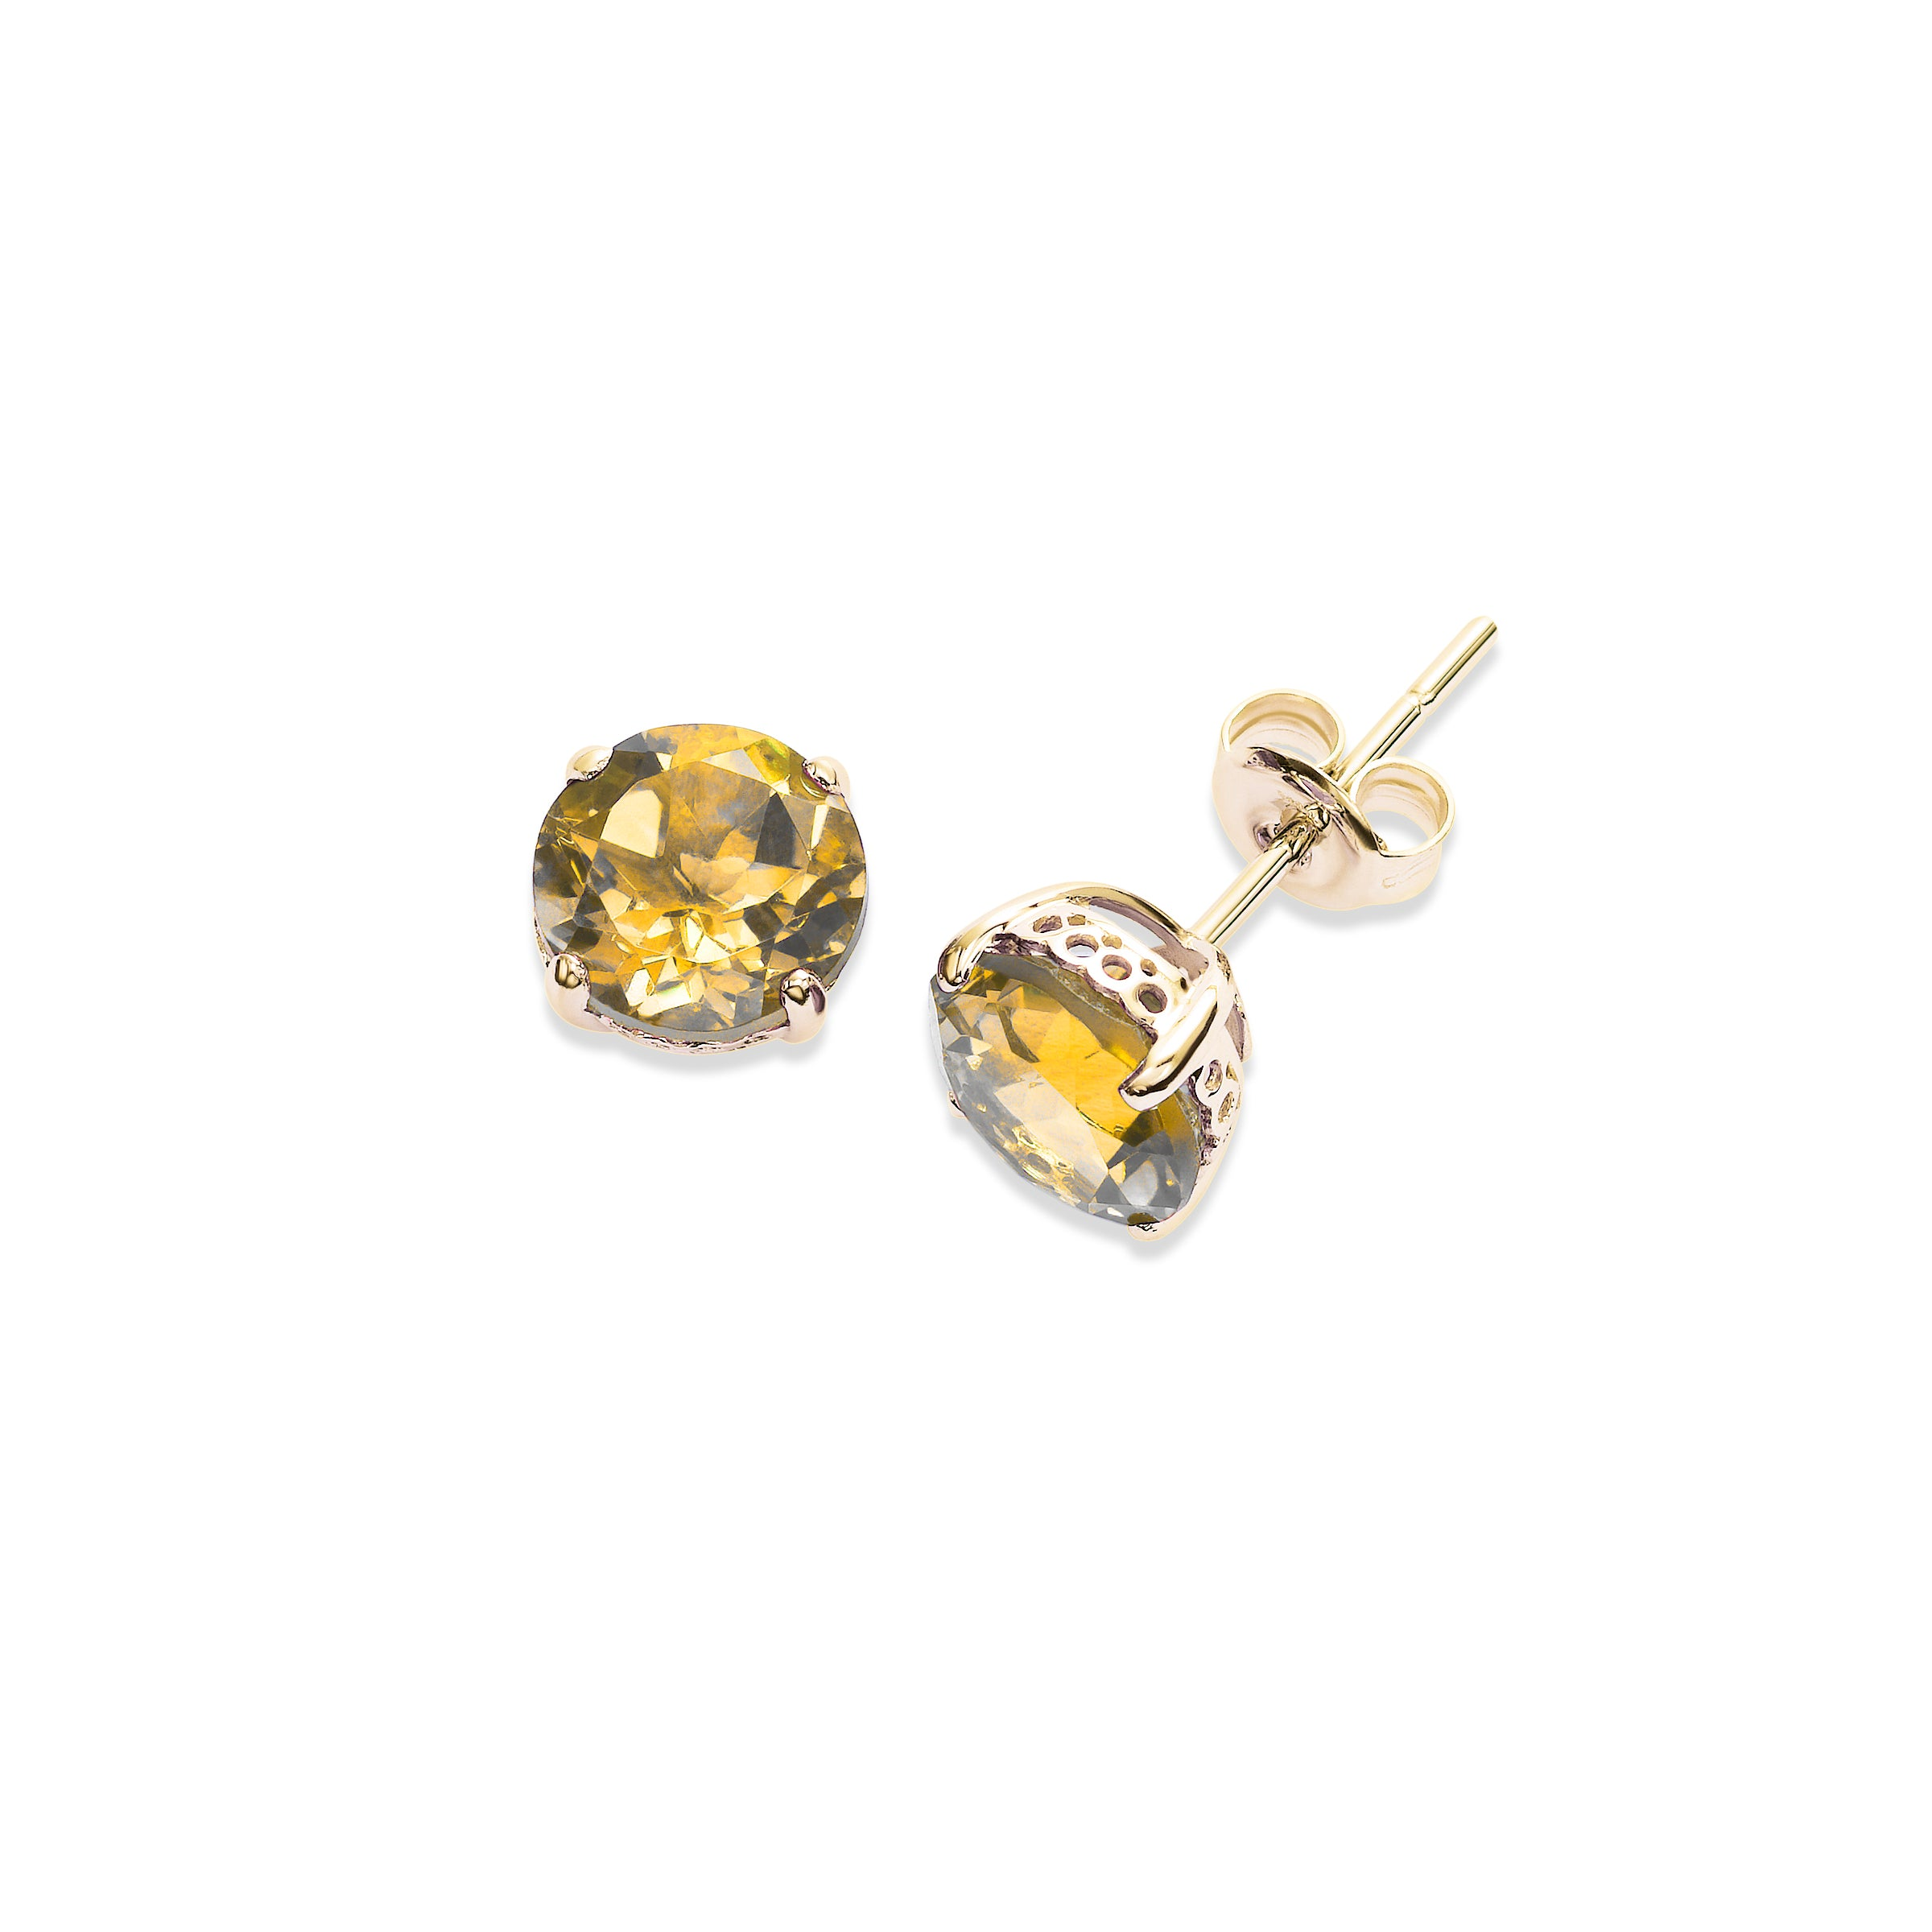 Round Citrine 8MM Stud Earrings, 14K Yellow Gold